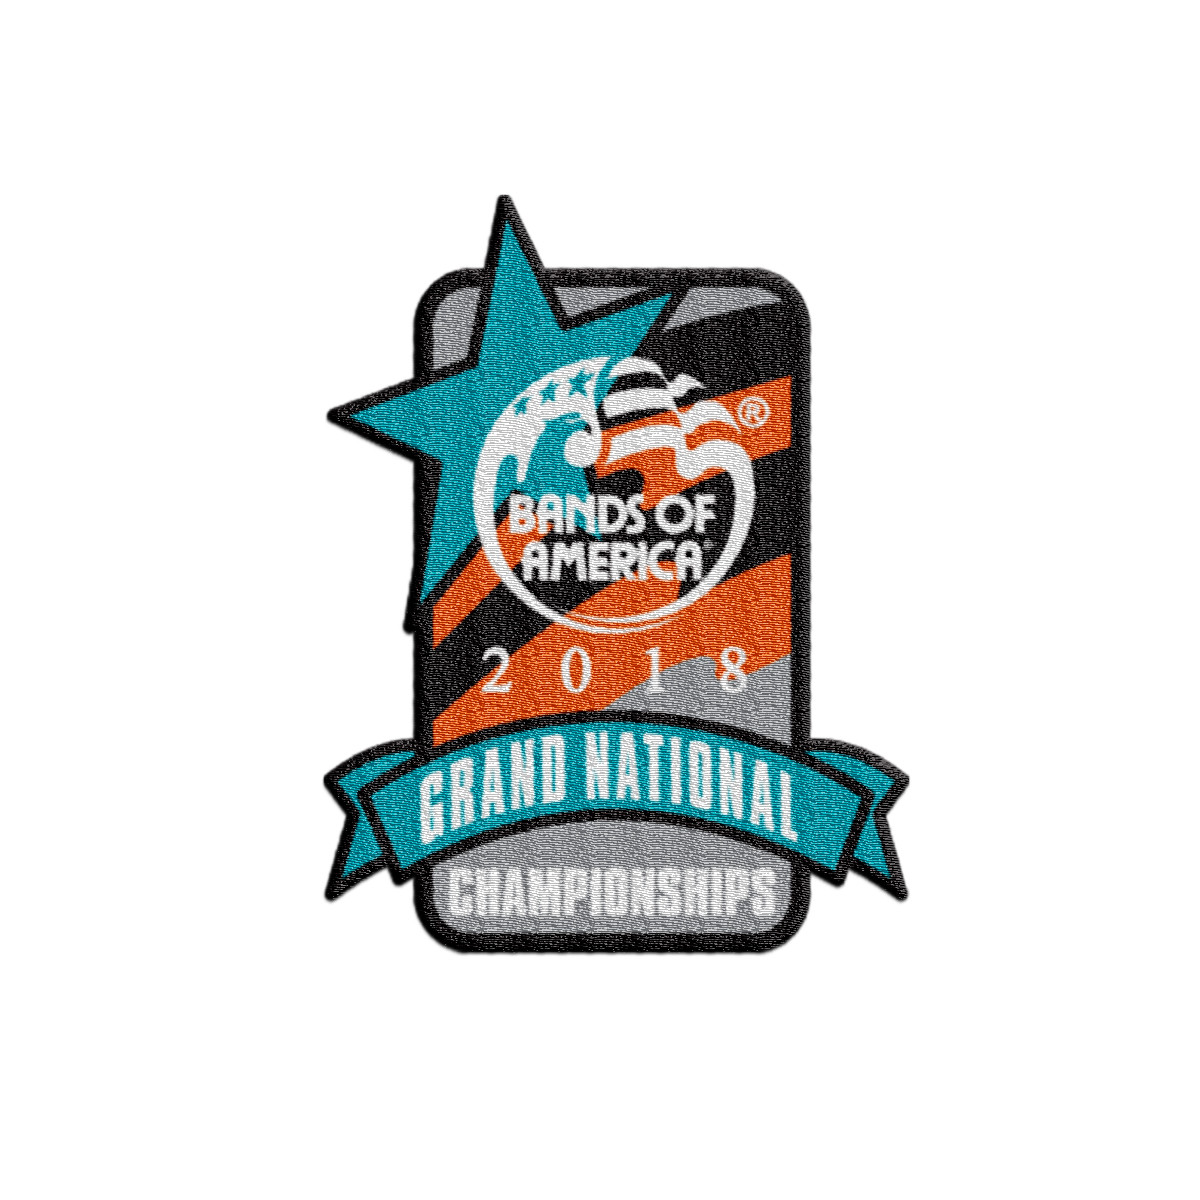 2018 Grand National Championship Patch